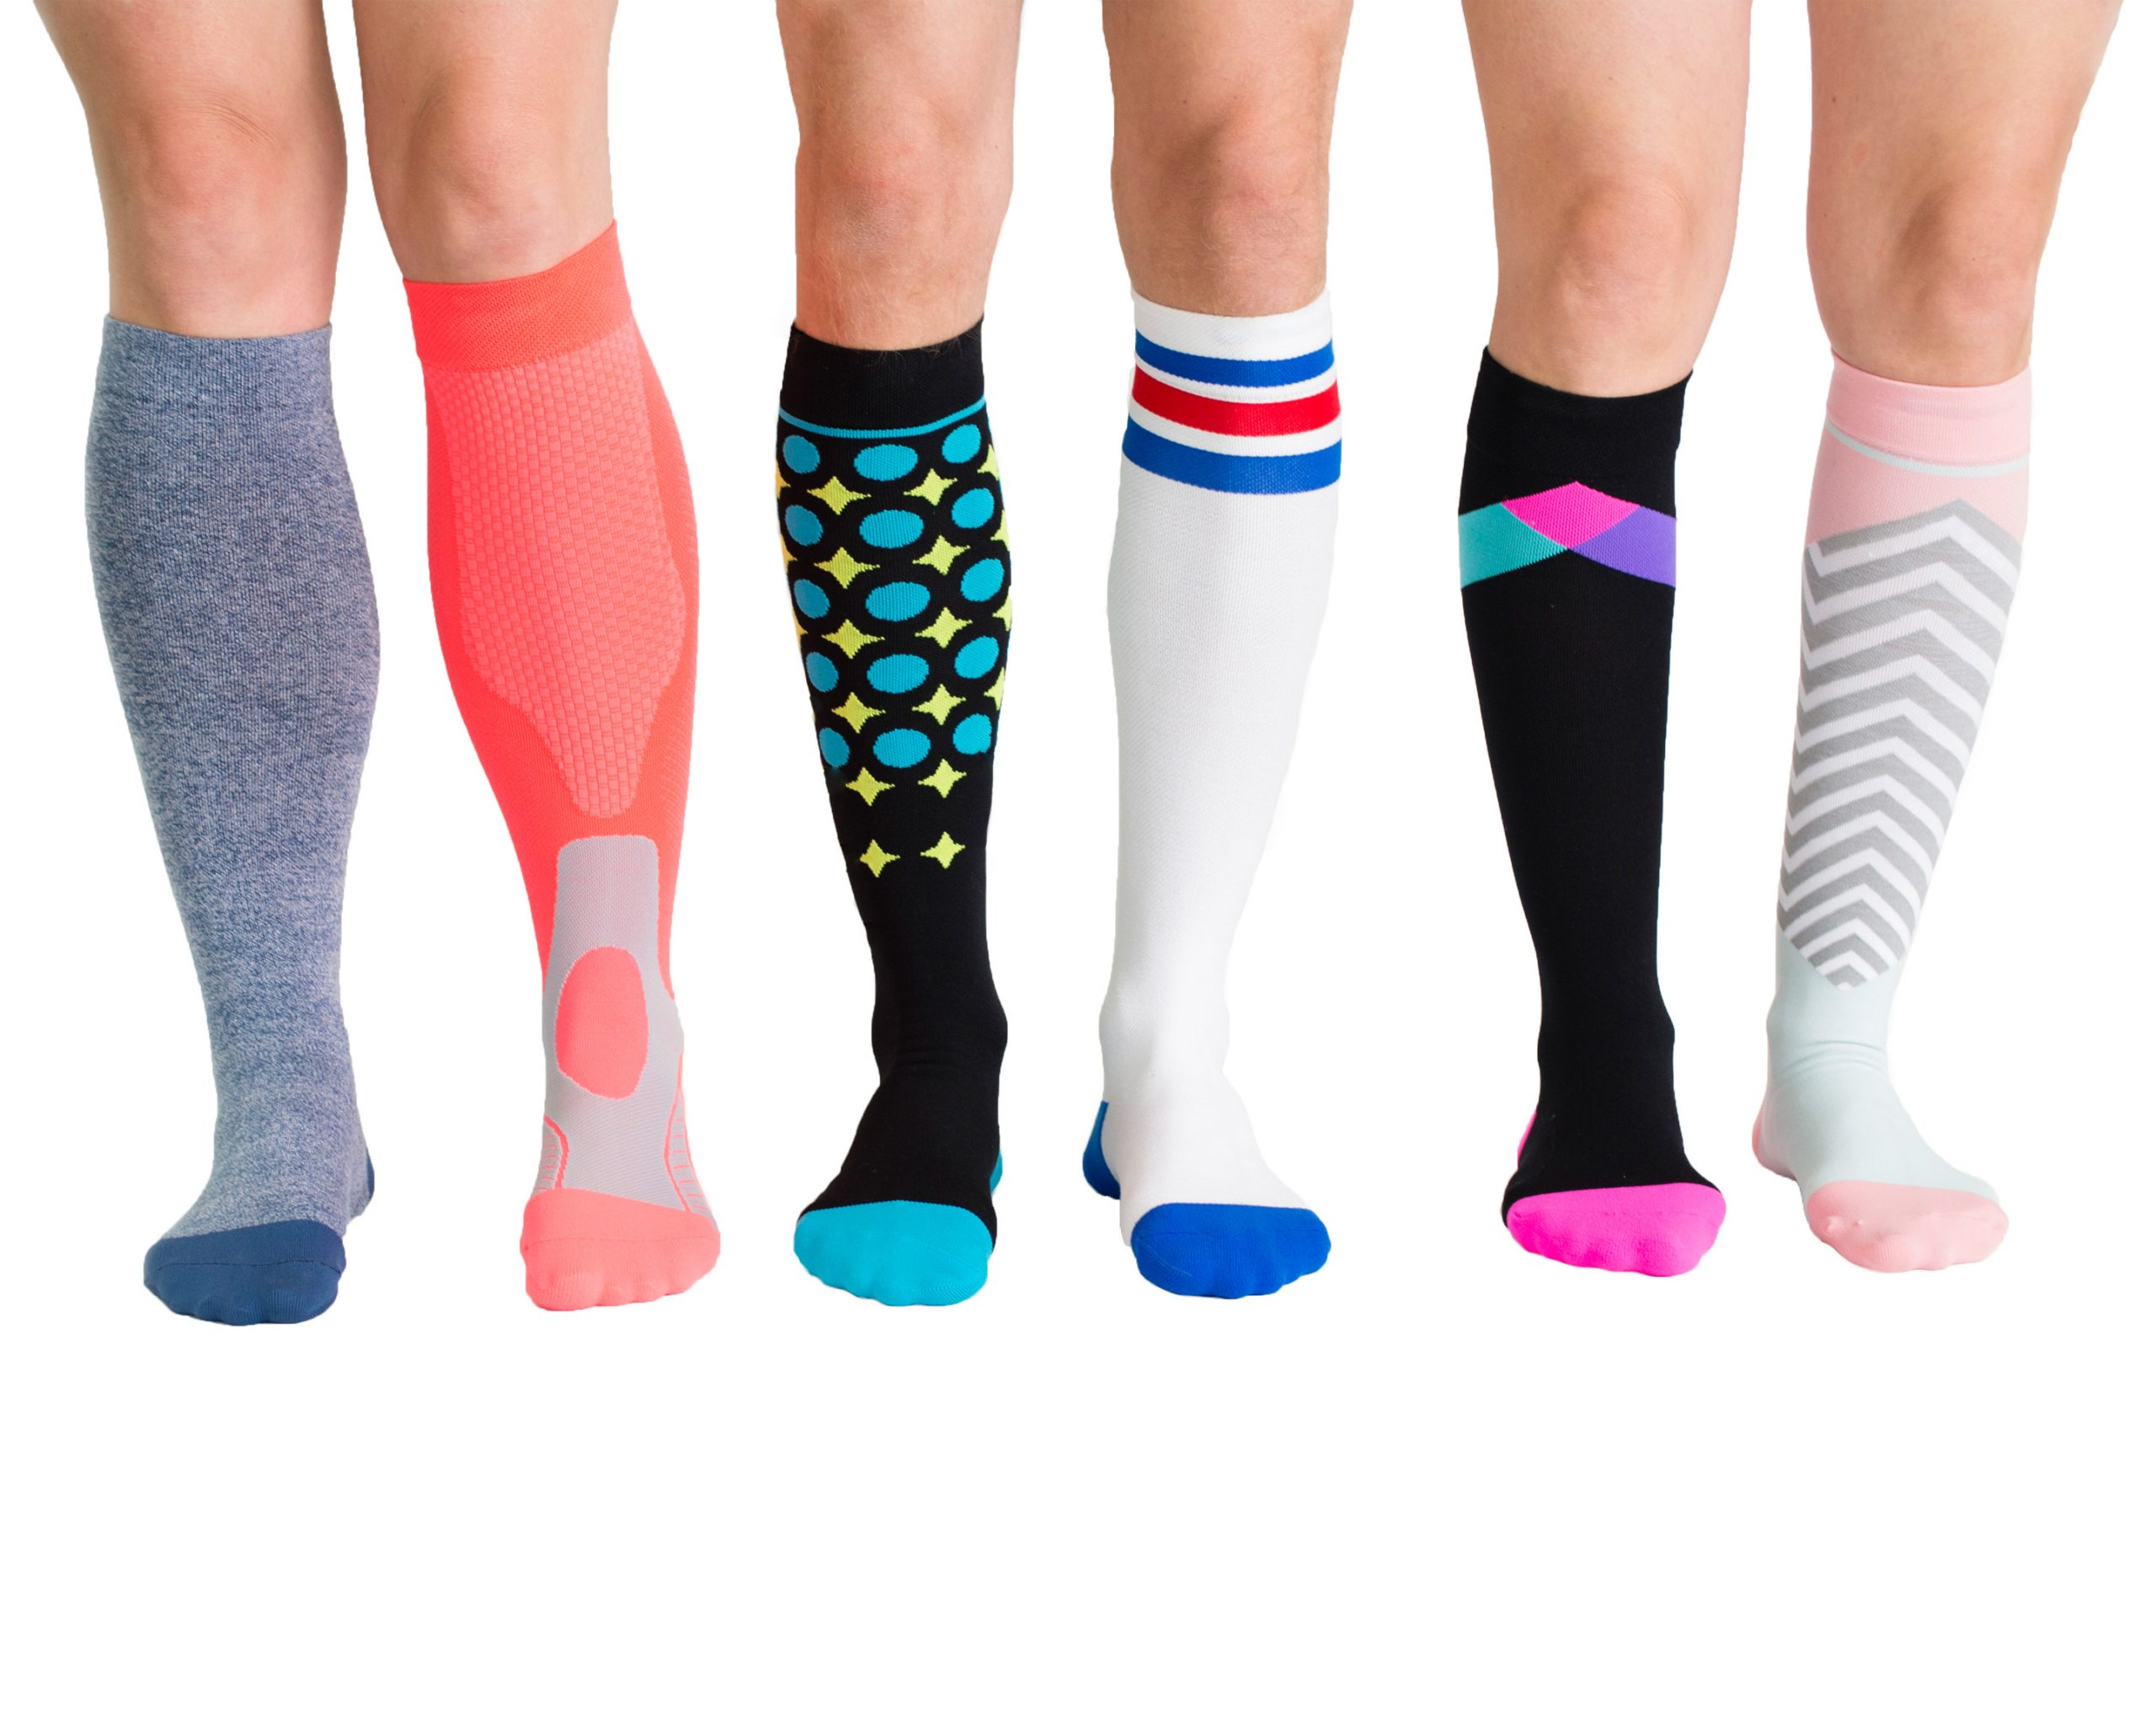 Top 10 Best Calf Compression Sleeves for Running Comparison